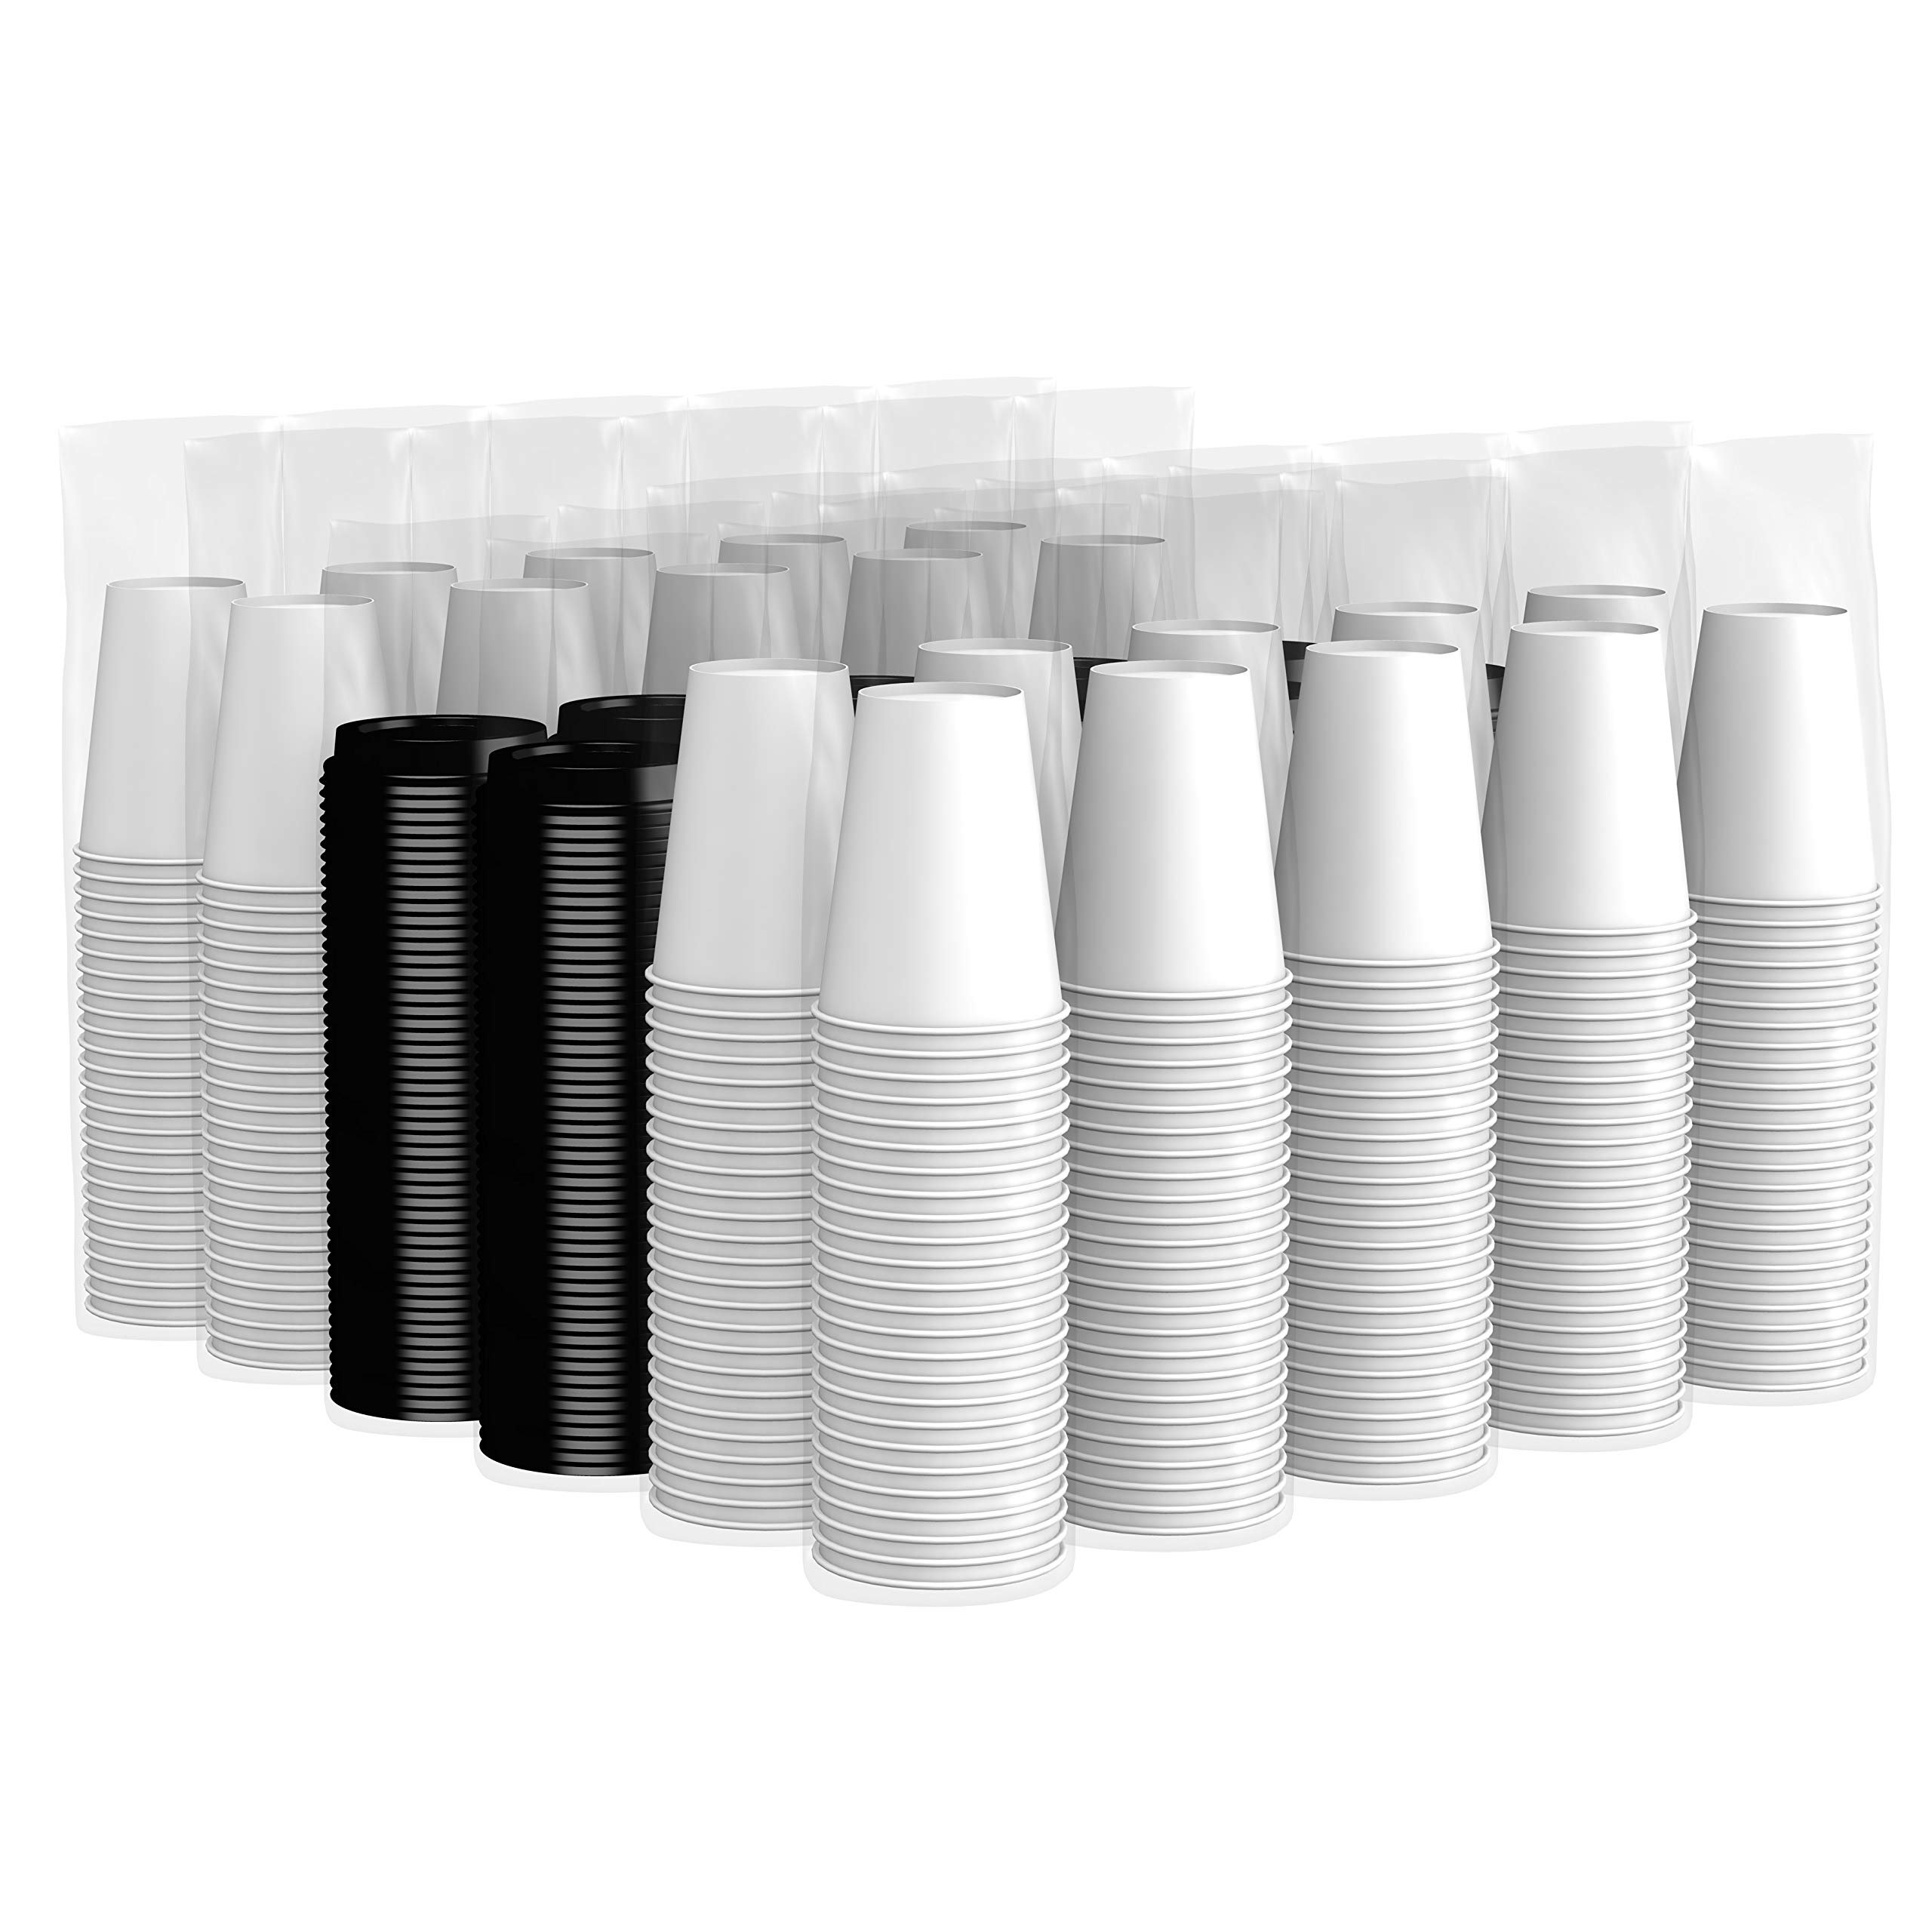 Amazon Brand - Solimo 12oz Paper Hot Cup with Lid, 500 Count by Solimo (Image #4)